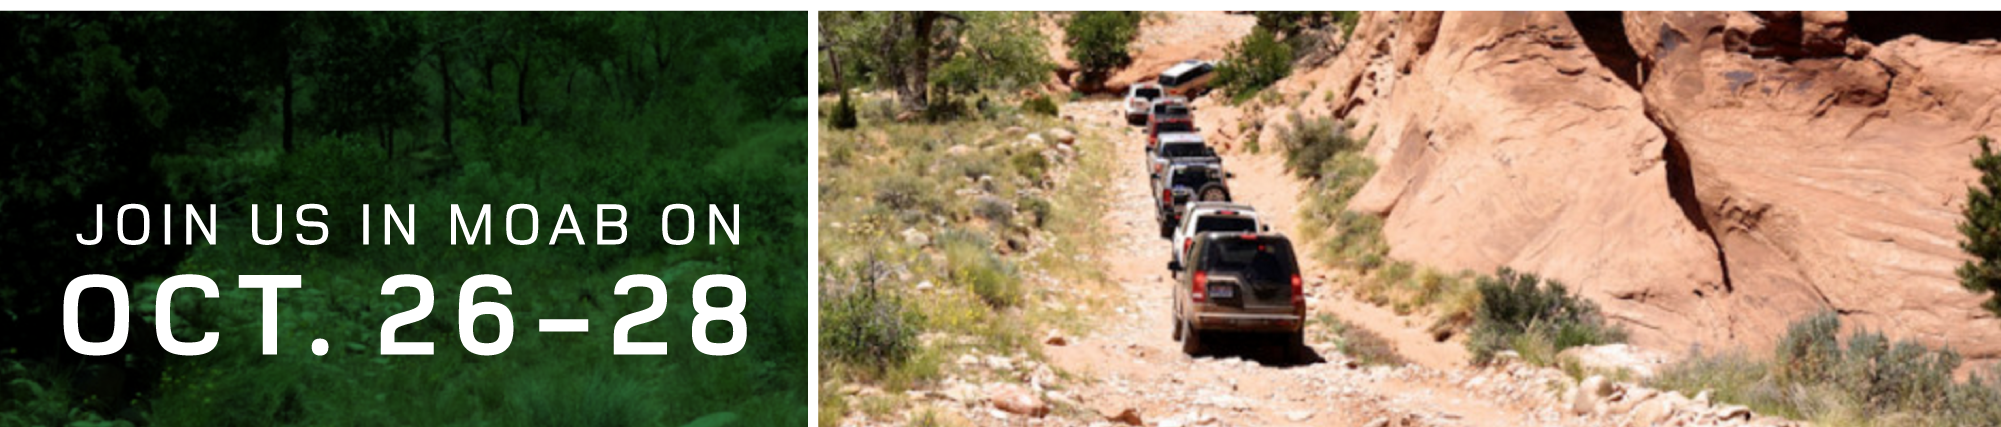 2017 Moab Off-Road Adventure